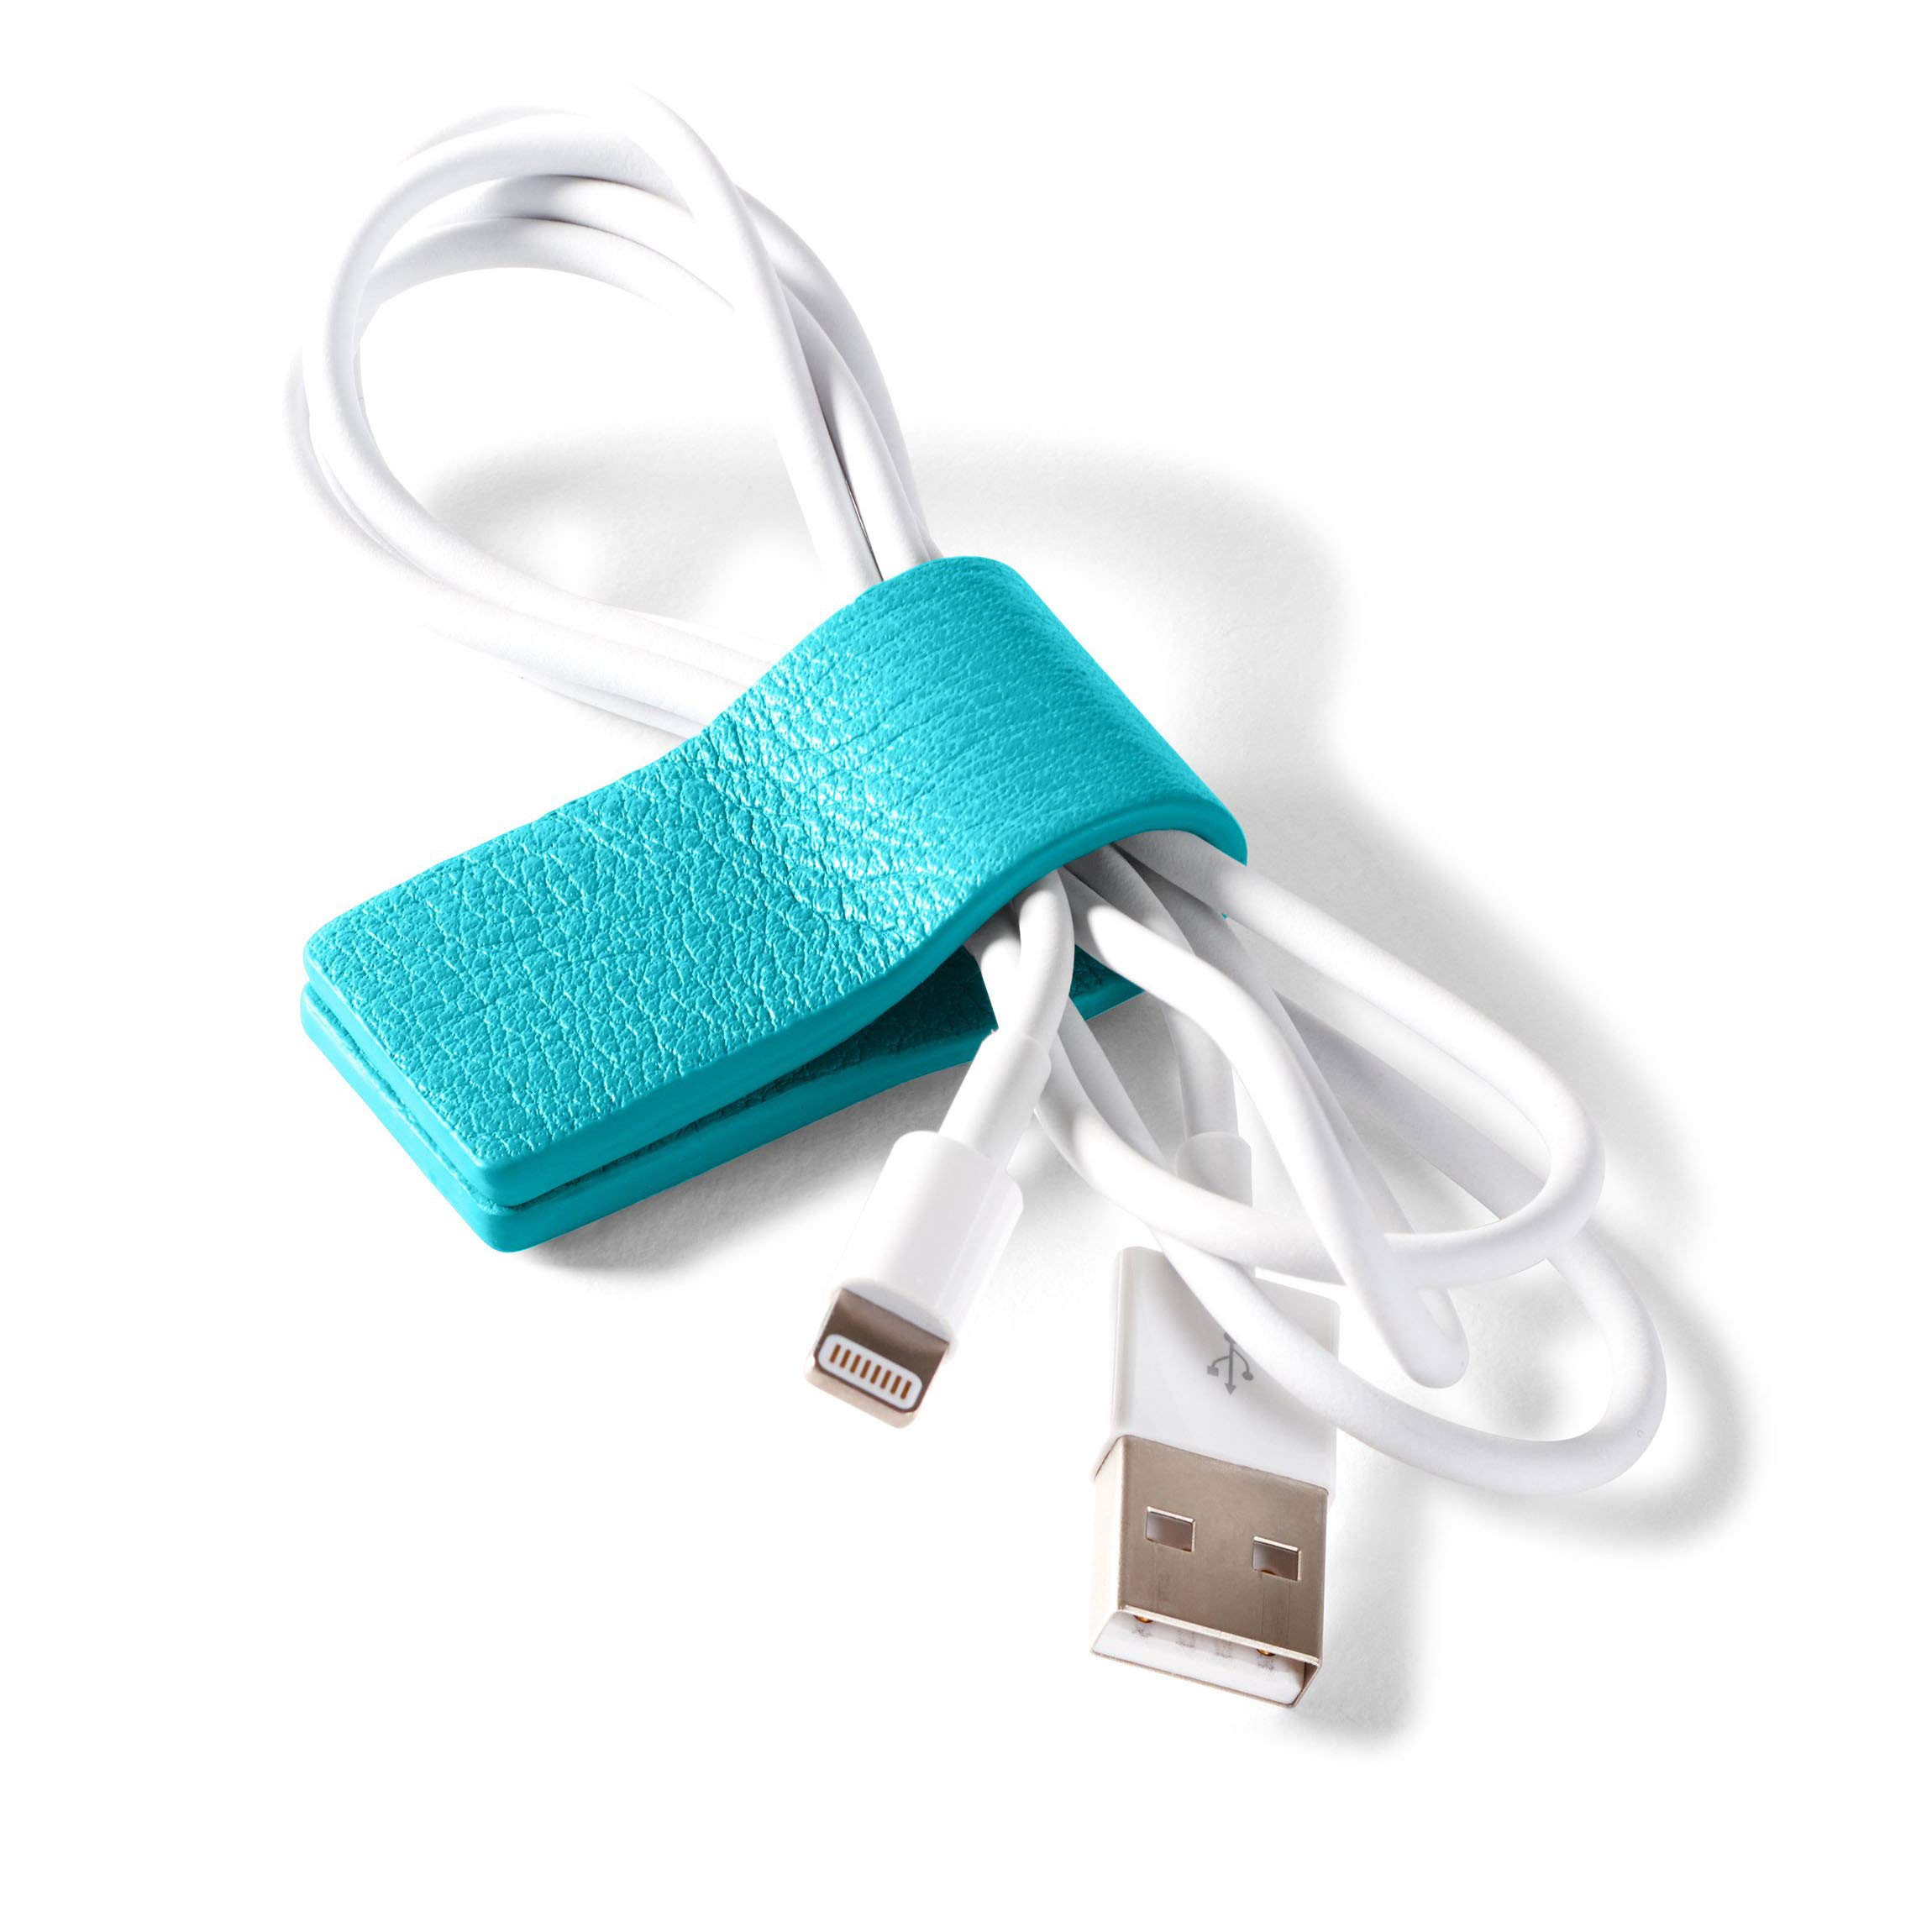 Cord Wrap - Full Grain Leather - Teal (blue)